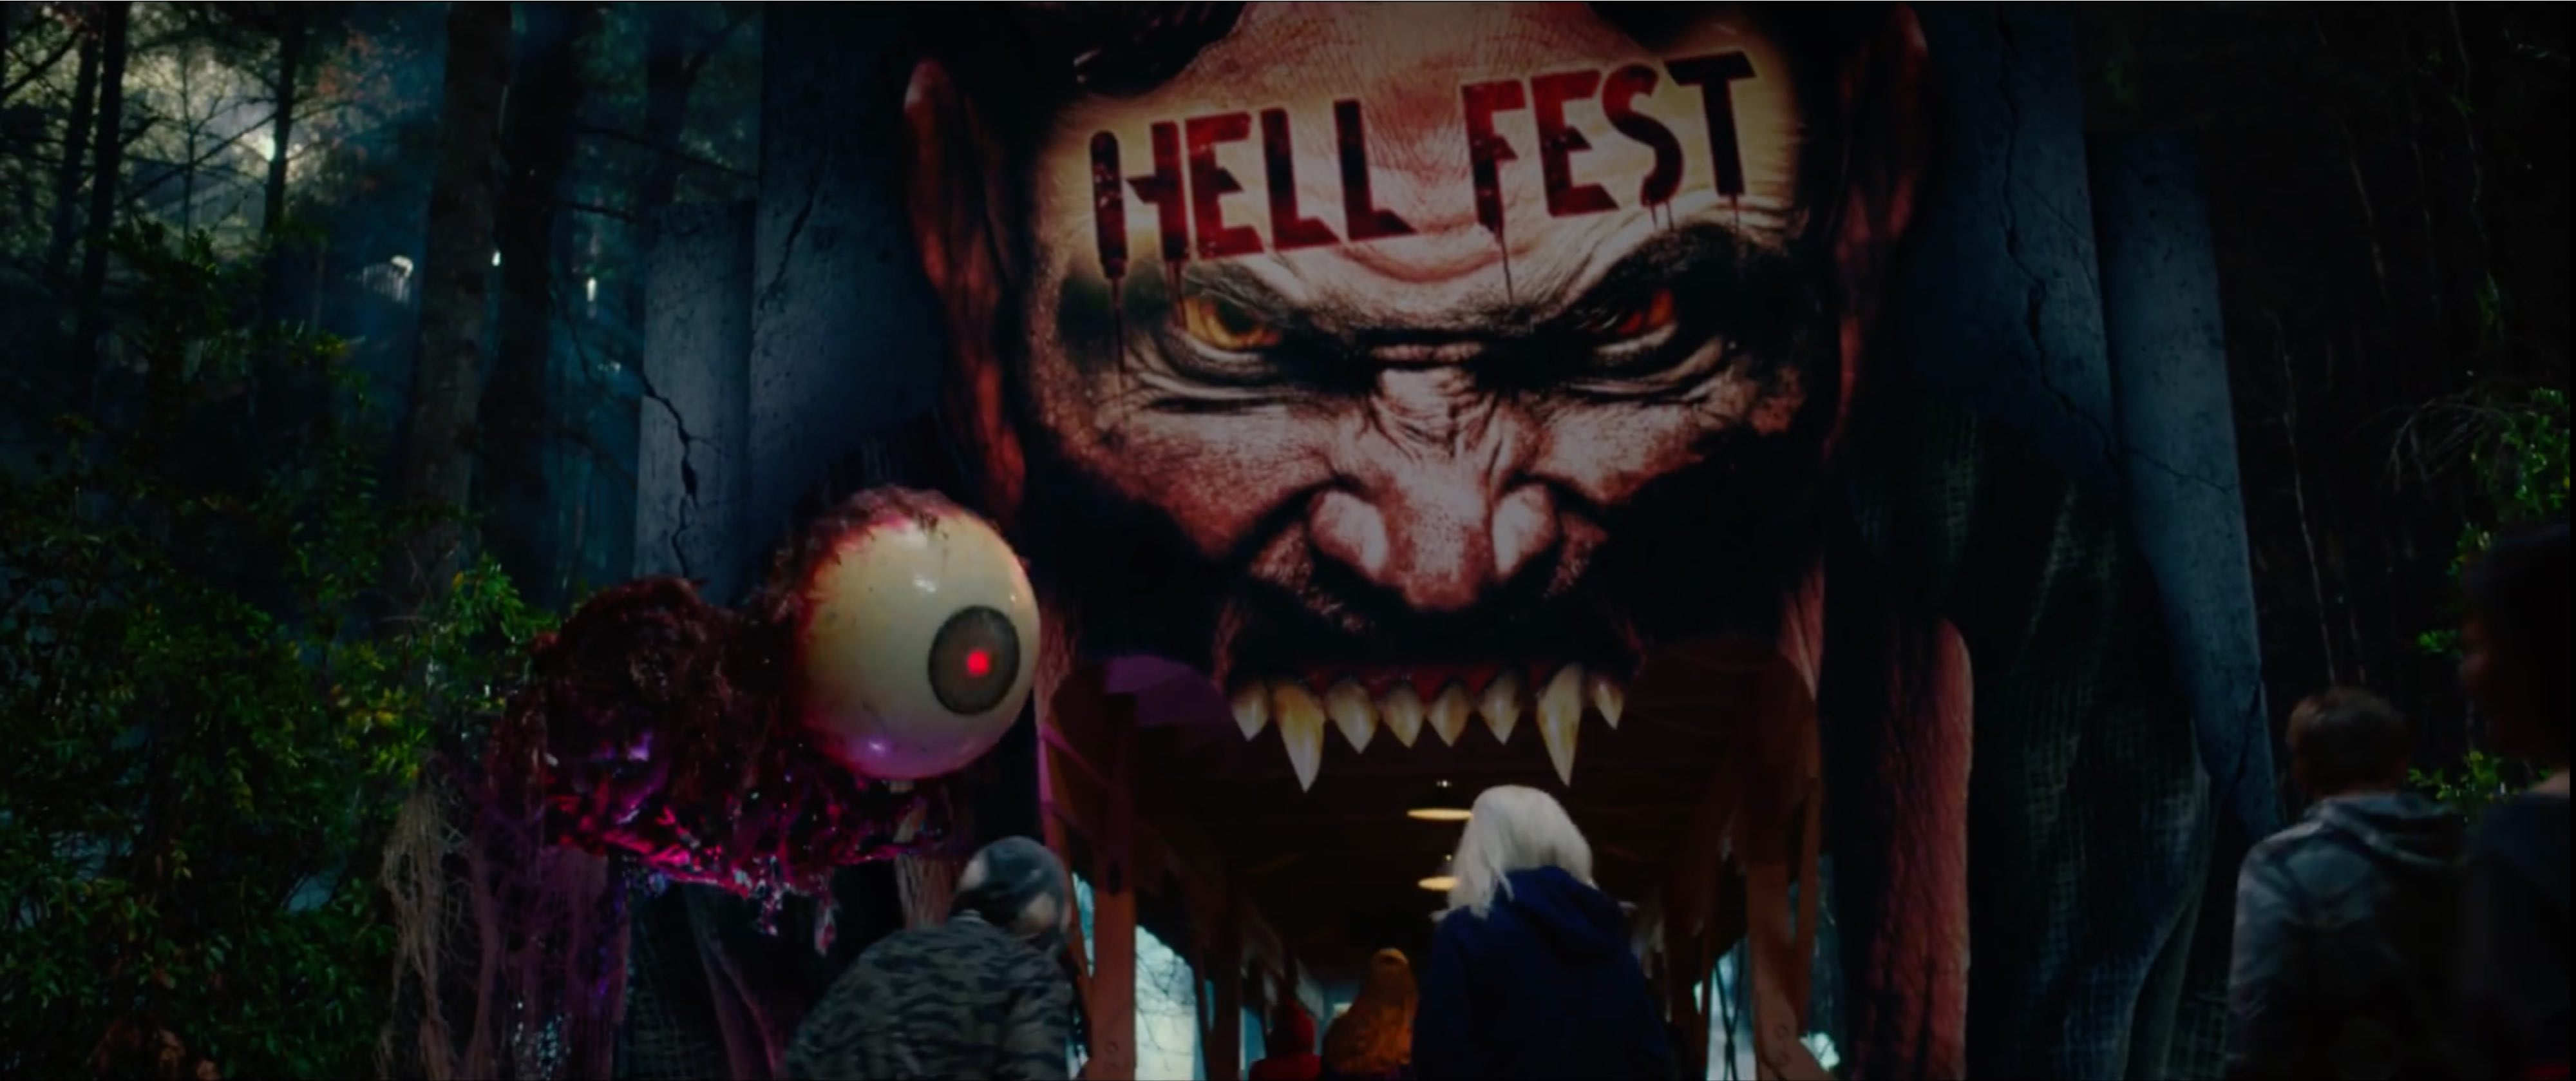 hell fest trailer a horror movie set at a halloween horror nights type event updated film